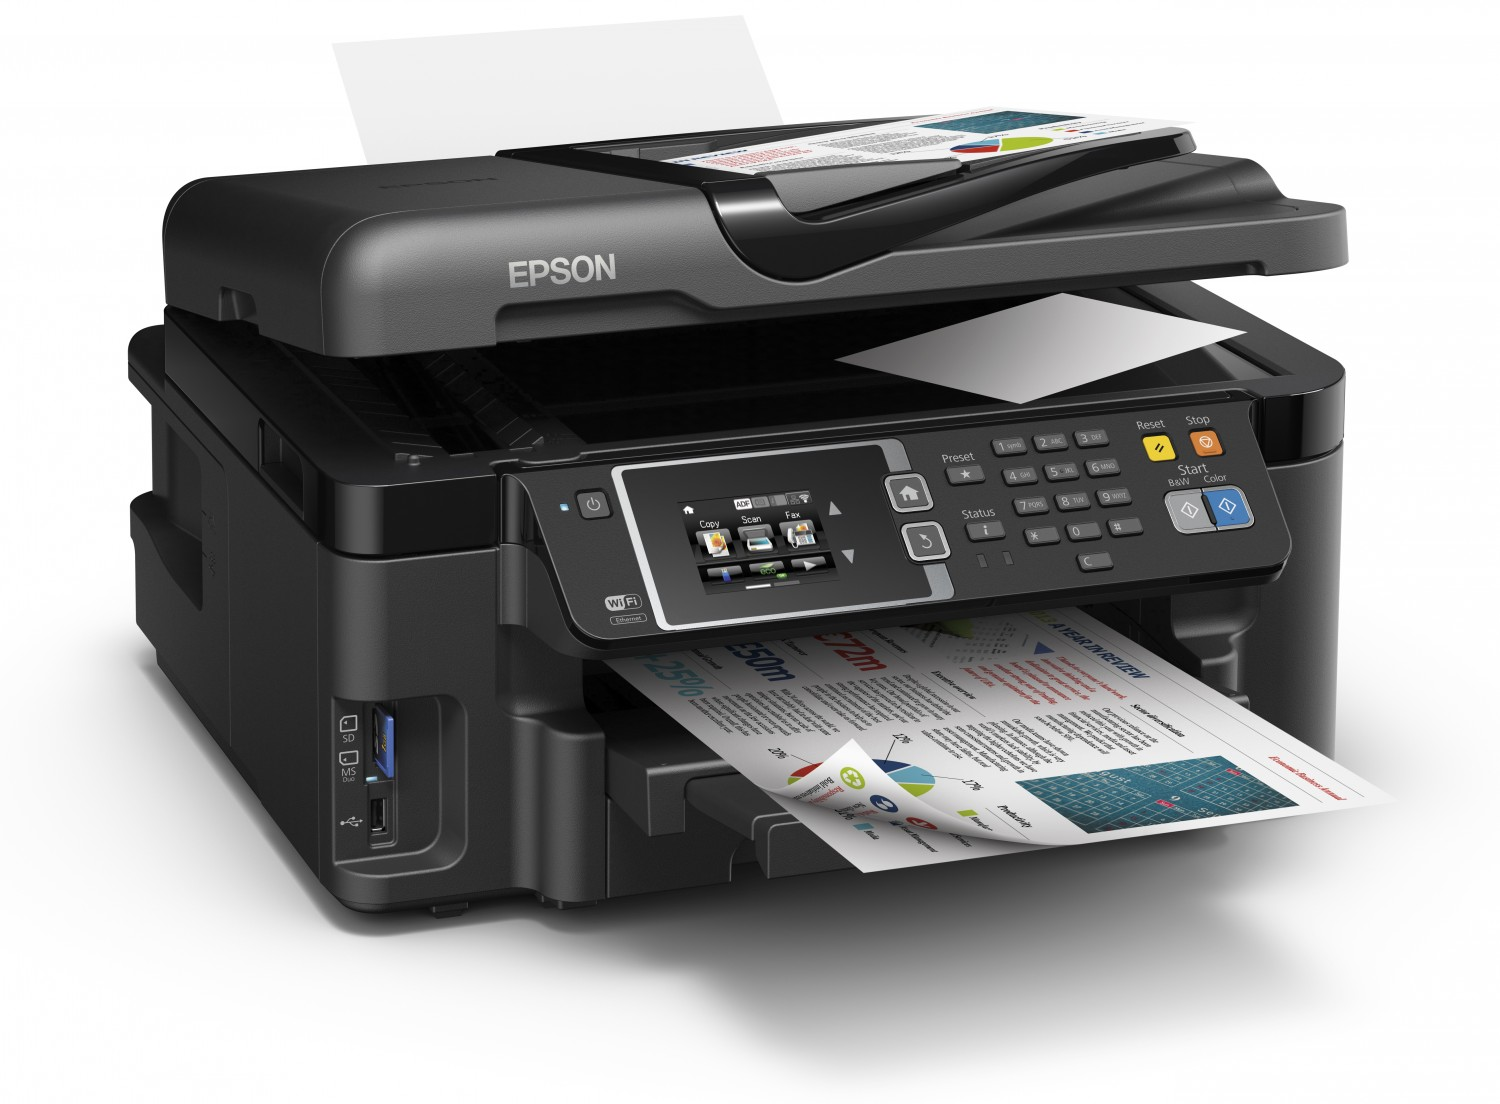 Epson WorkForce WF-3620 All-in-One Printer Wireless